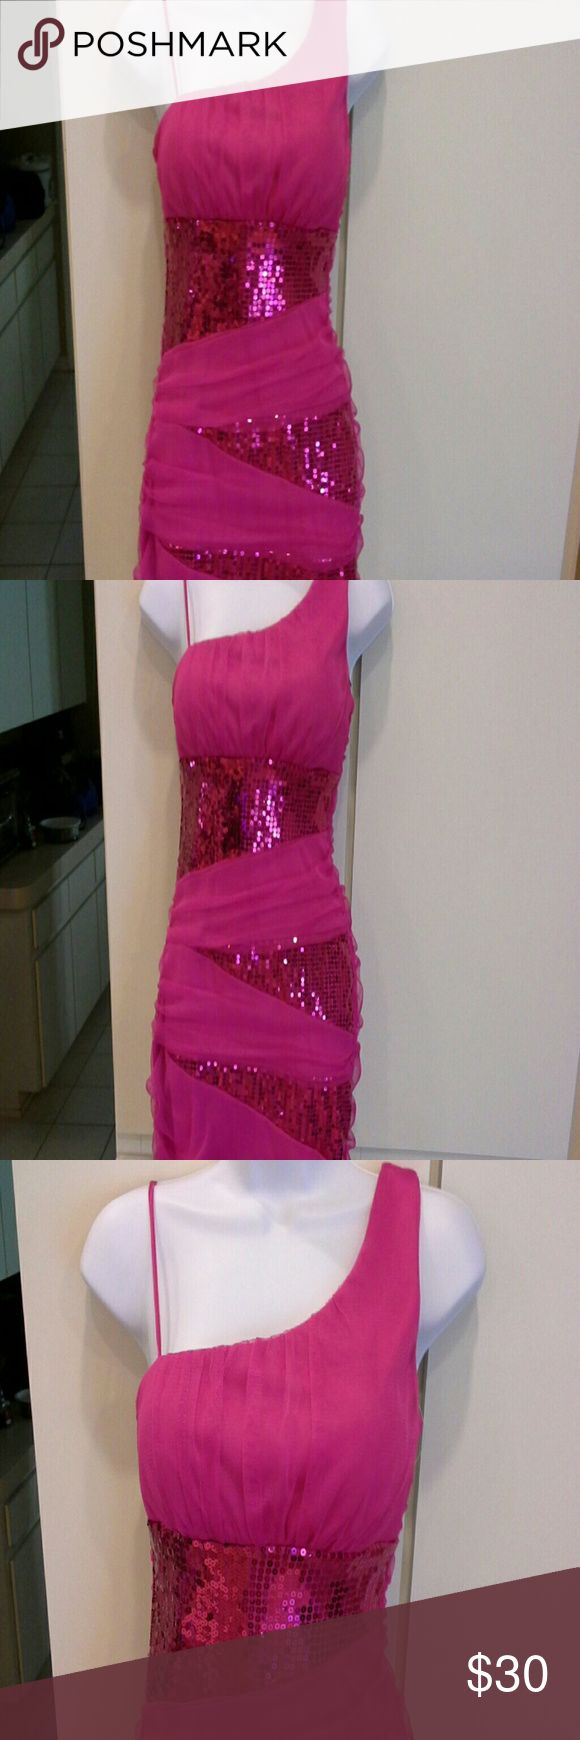 Hey gorgeous ♥ Teeze Me ..dress Absolutely beautiful fuscia sequined dress from Macys. Form fitting with some stretch & built in bra. It does have the fuscia under dress, so no slip needed. Excellent condition with no snags, tears or stains noted. Teeze Me Dresses Mini